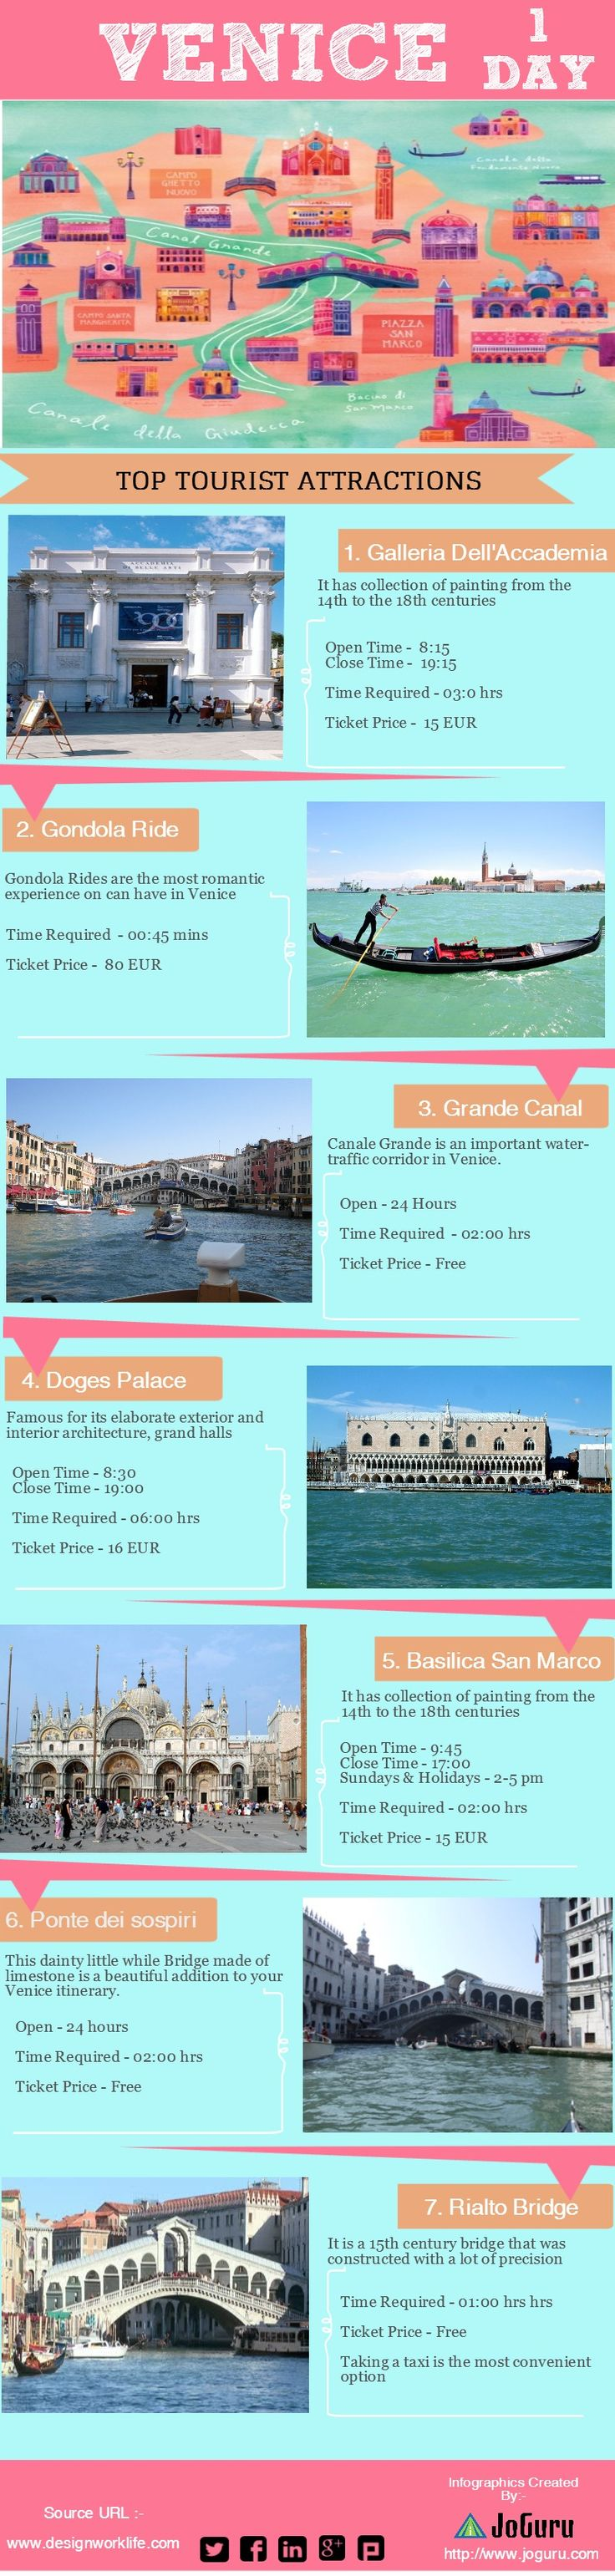 Venice Top Tourist Attractions | #travel #infographic made in Piktochart